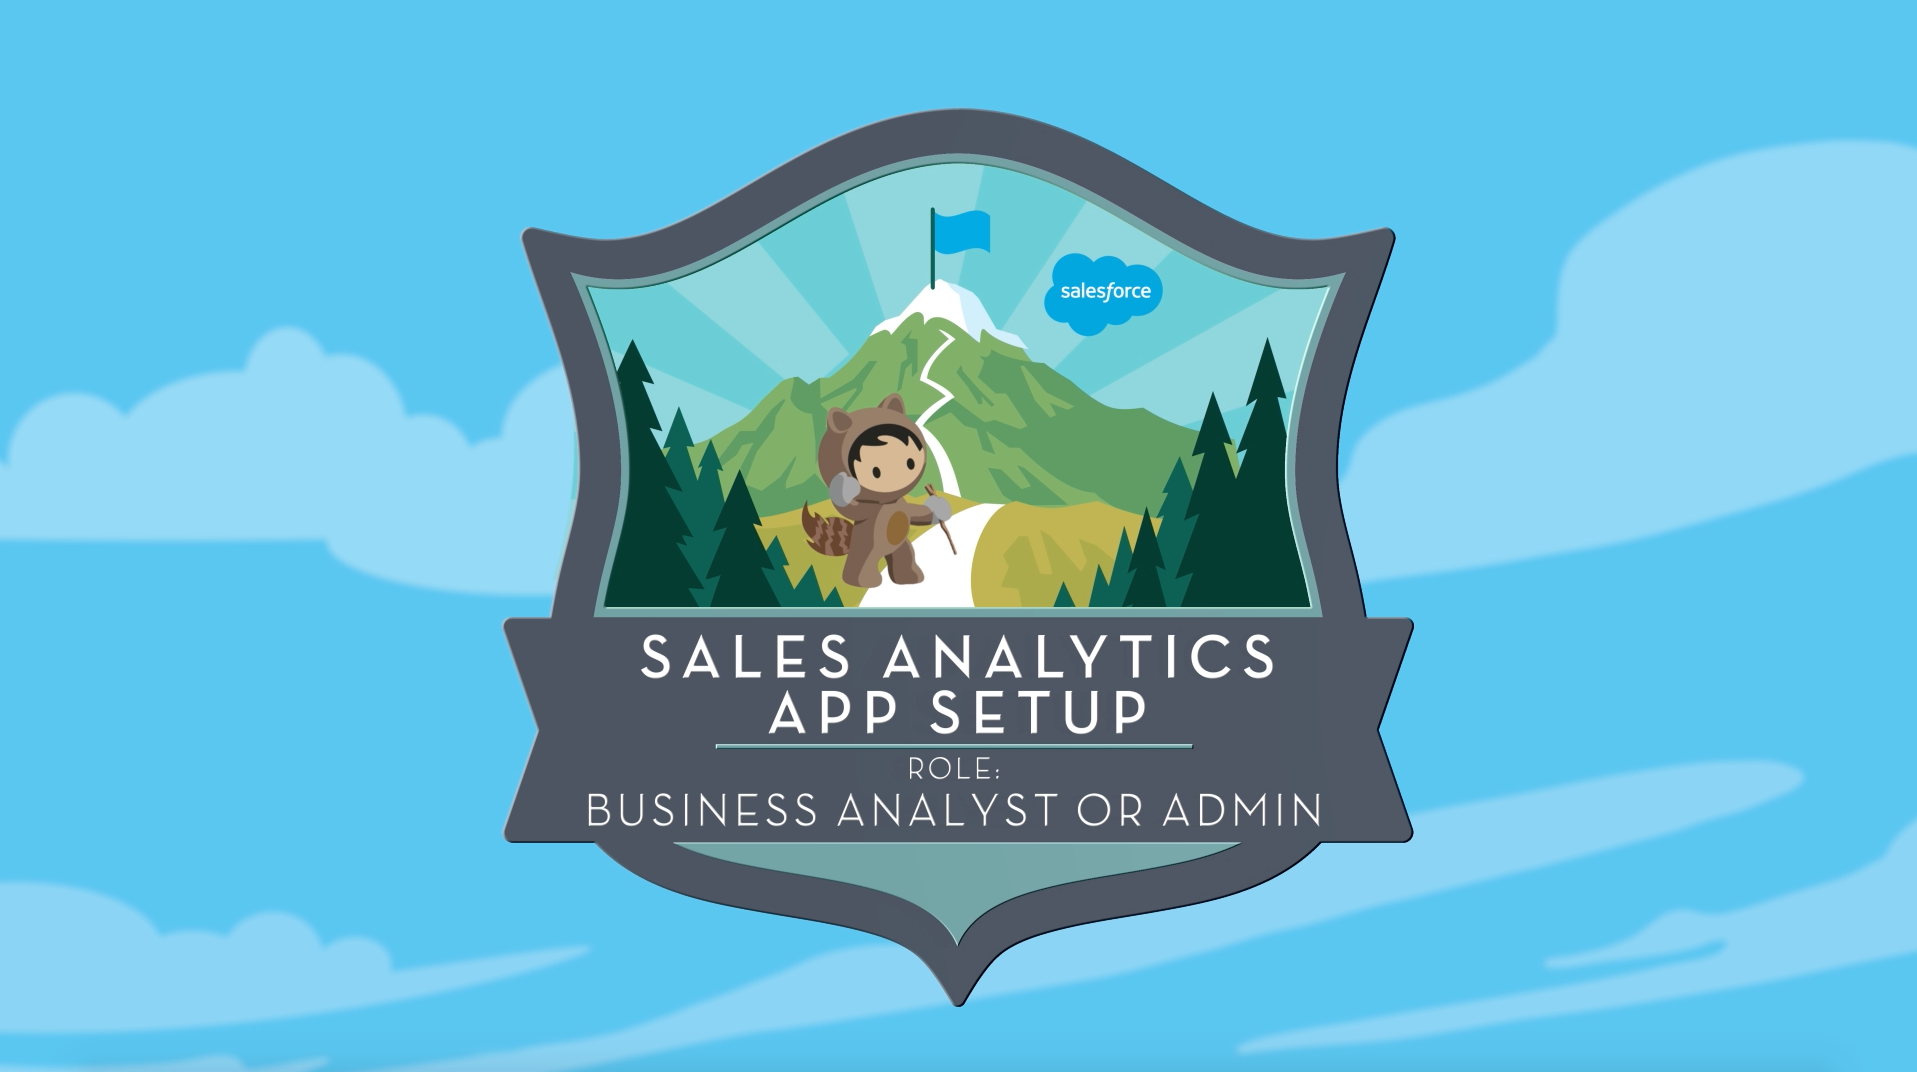 Sales Analytics App Setup